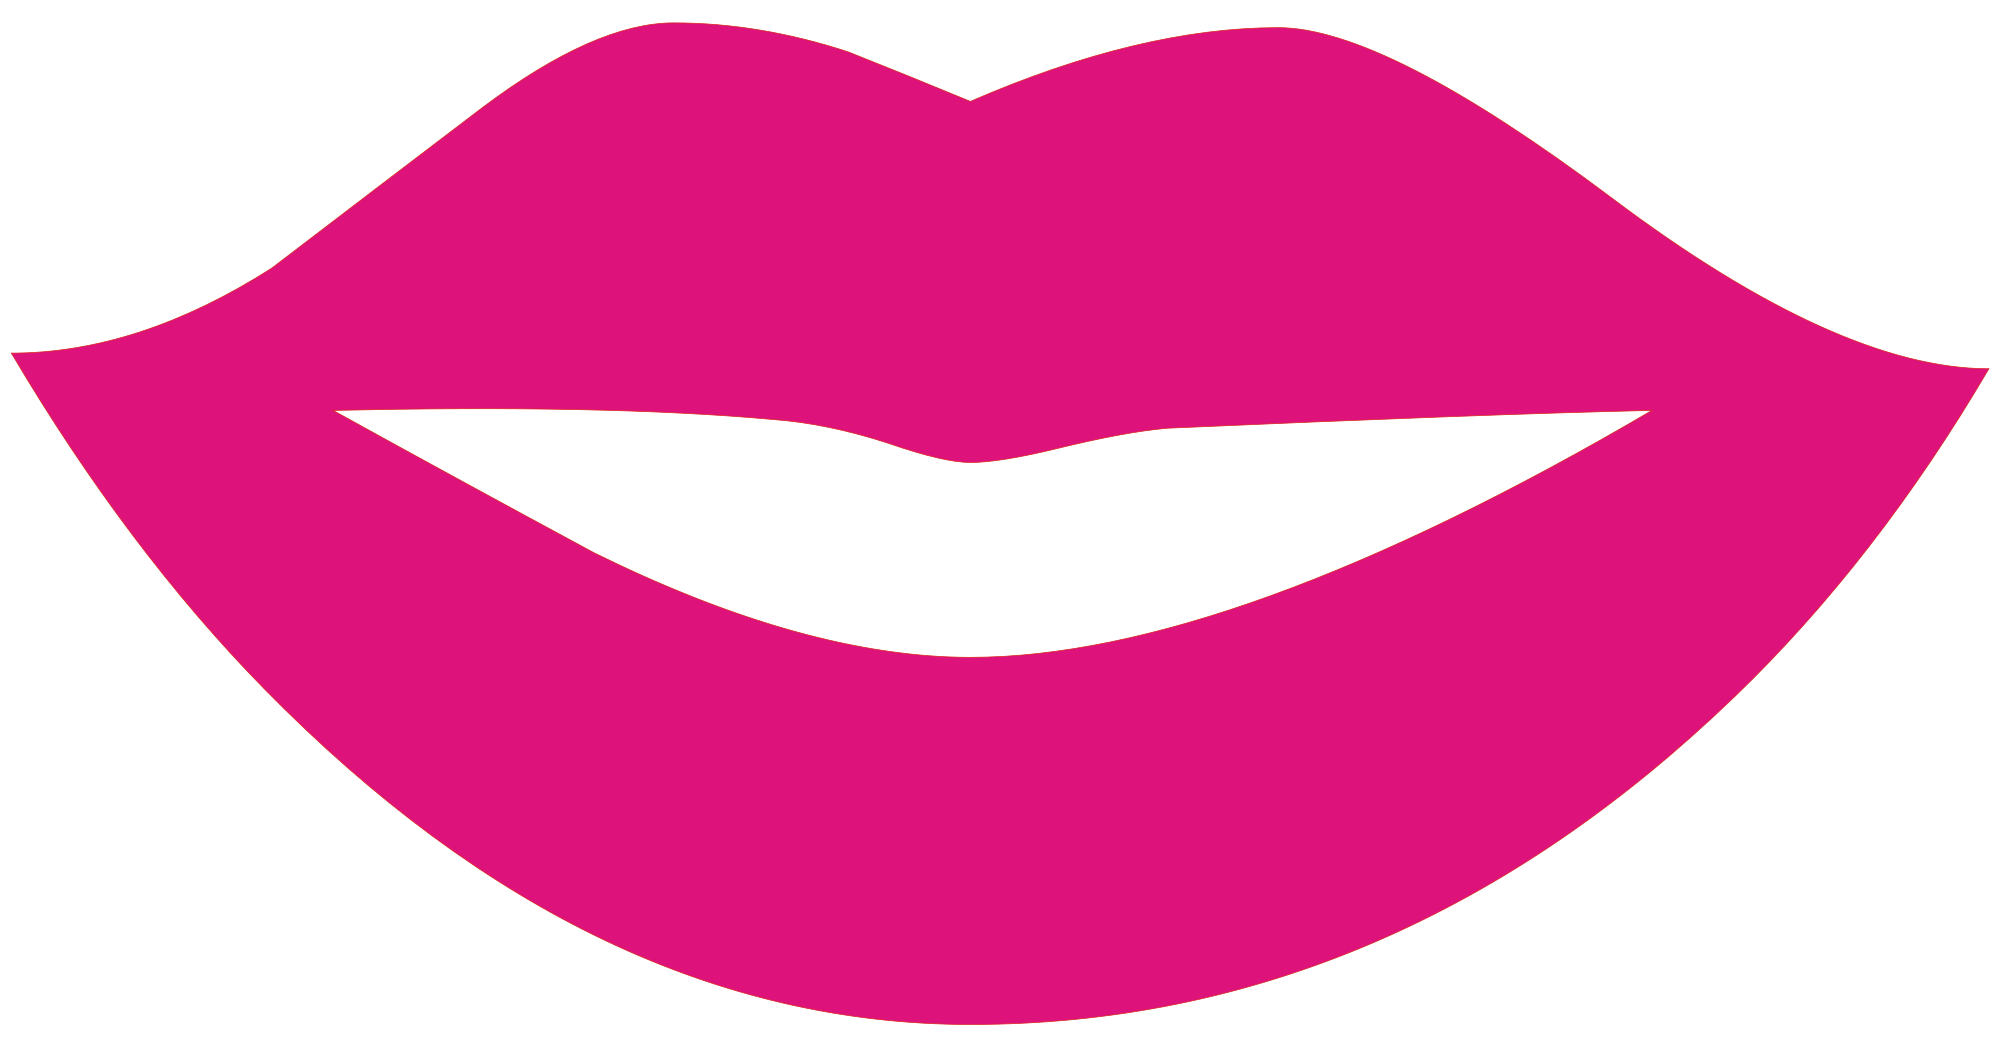 Best images about lips. Lipstick clipart watercolor